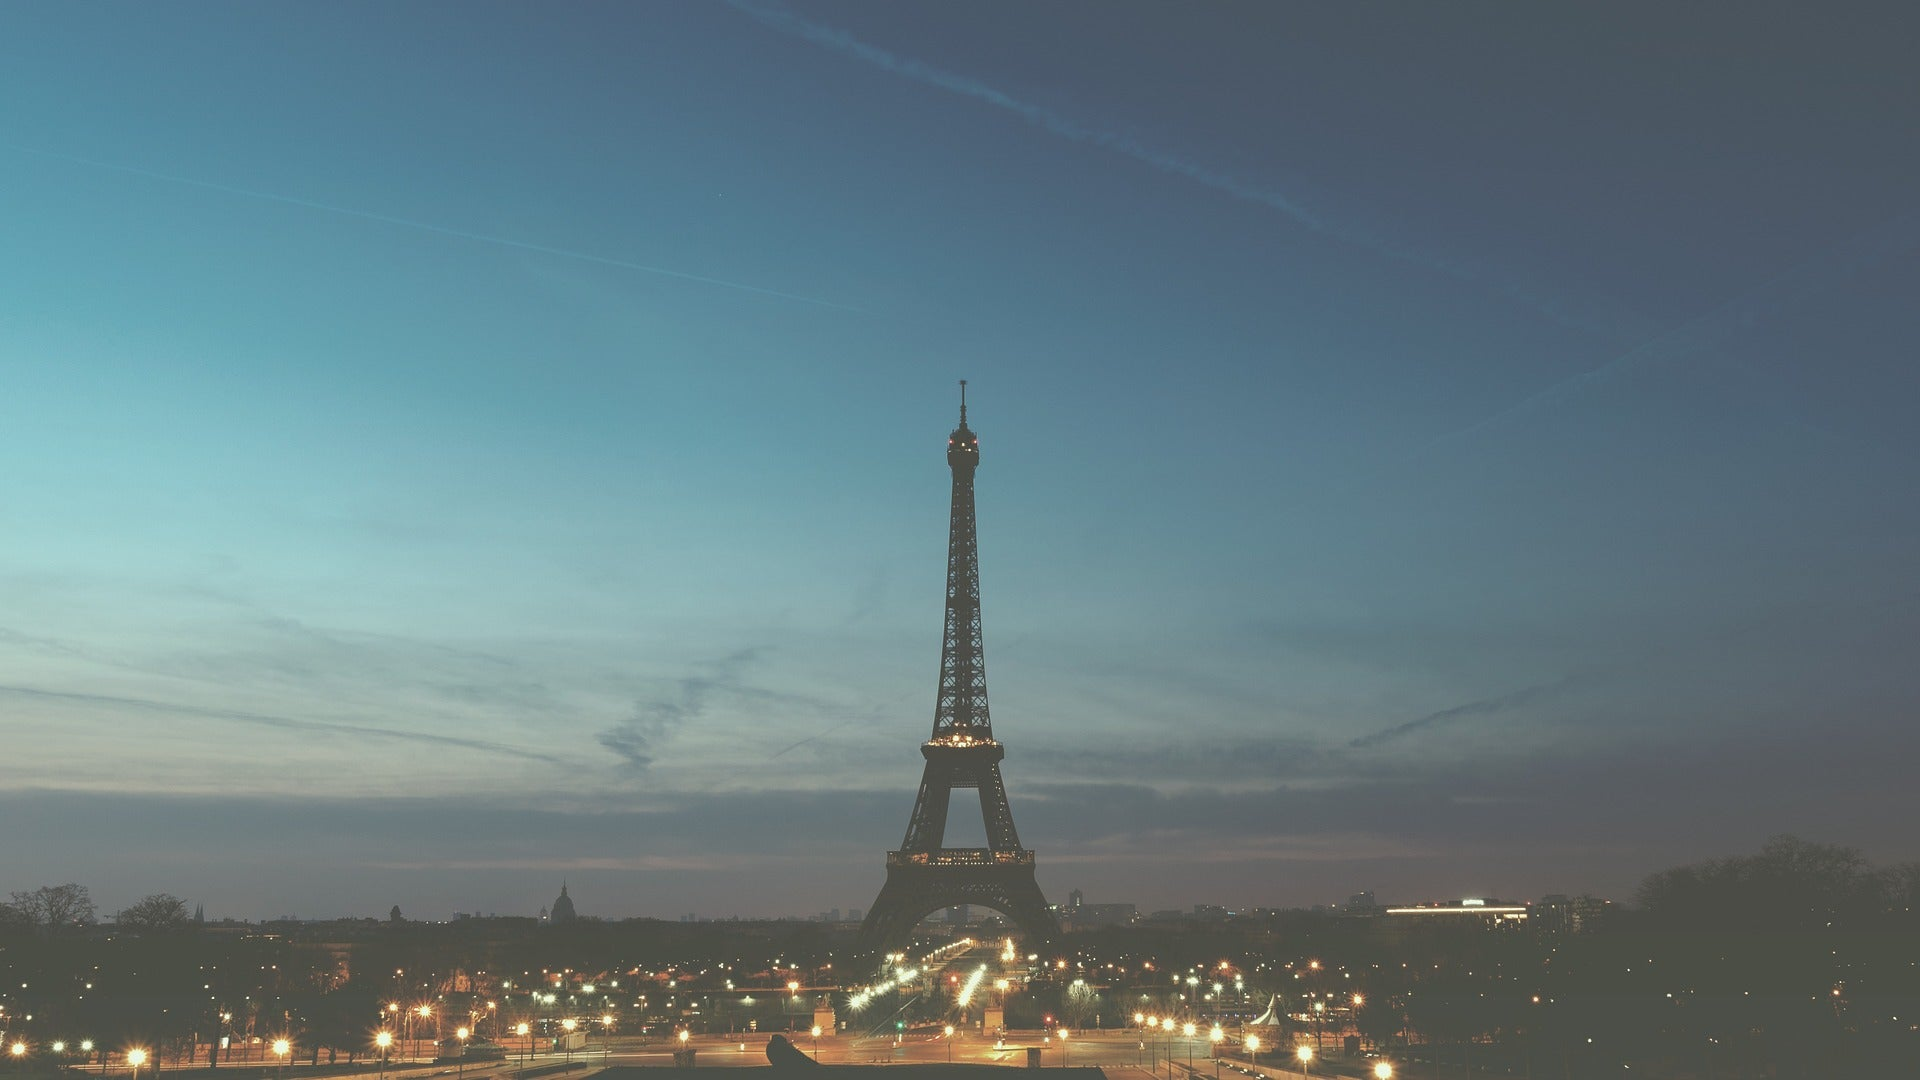 Eiffel Tower, France, Paris, French